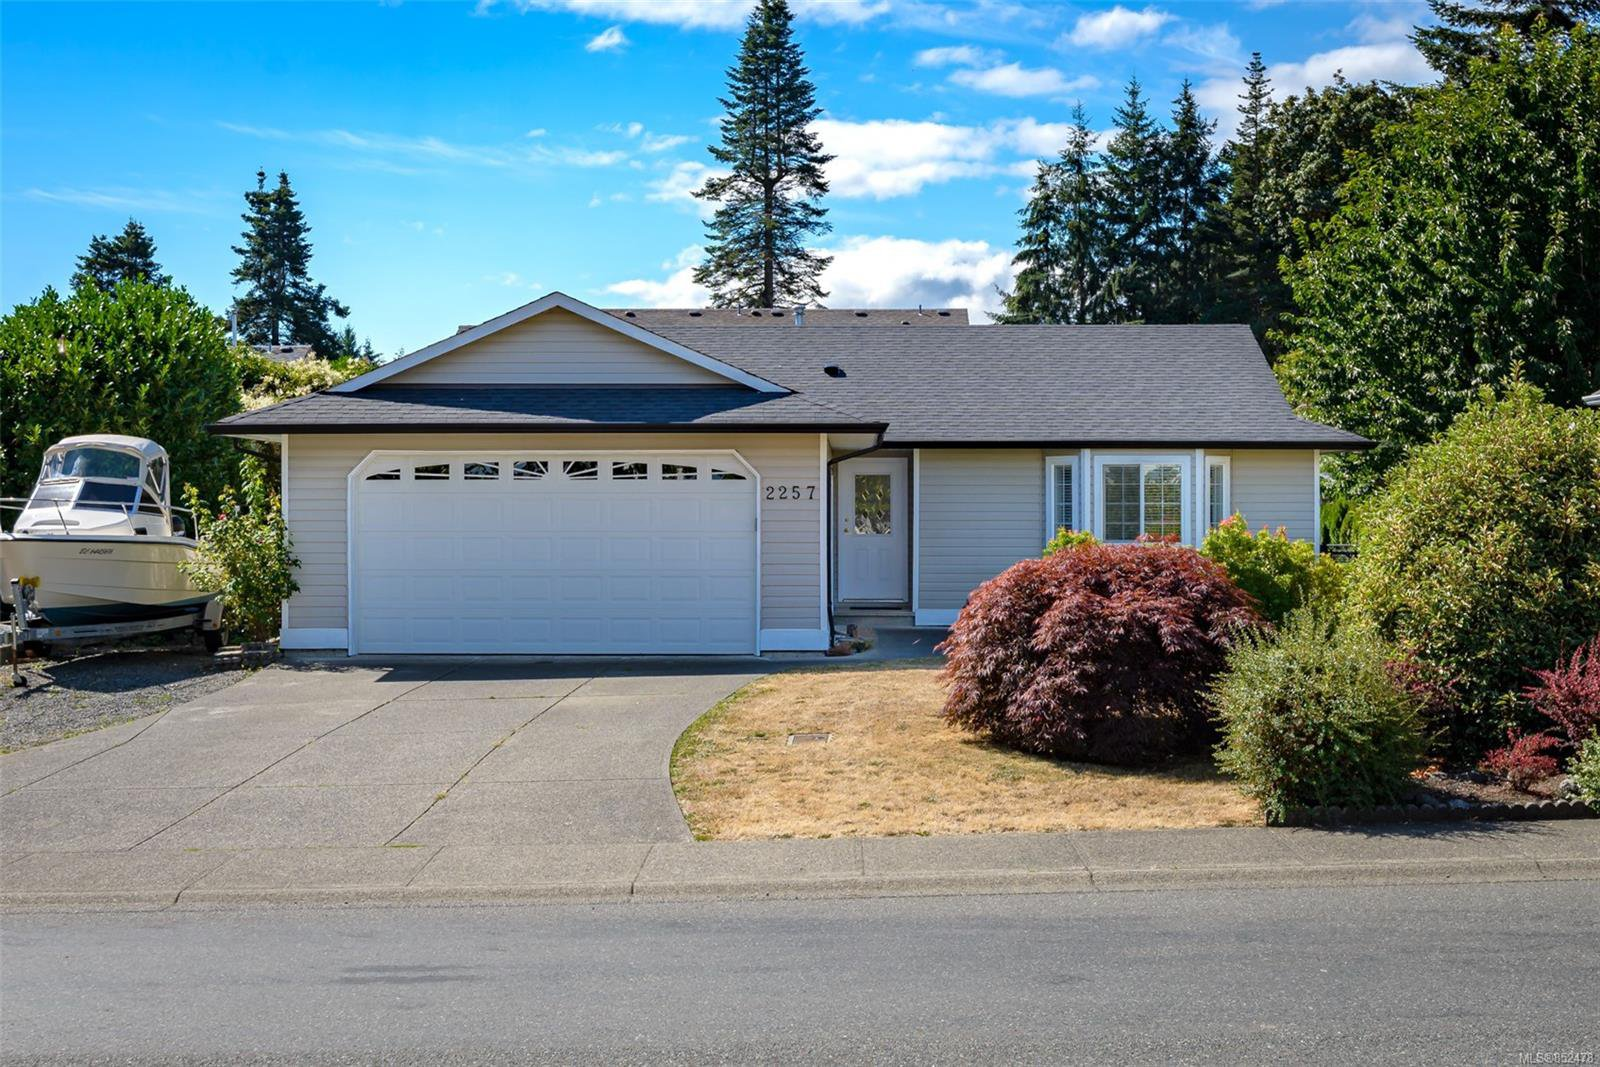 Main Photo: 2257 Bolt Ave in : CV Comox (Town of) House for sale (Comox Valley)  : MLS®# 852478